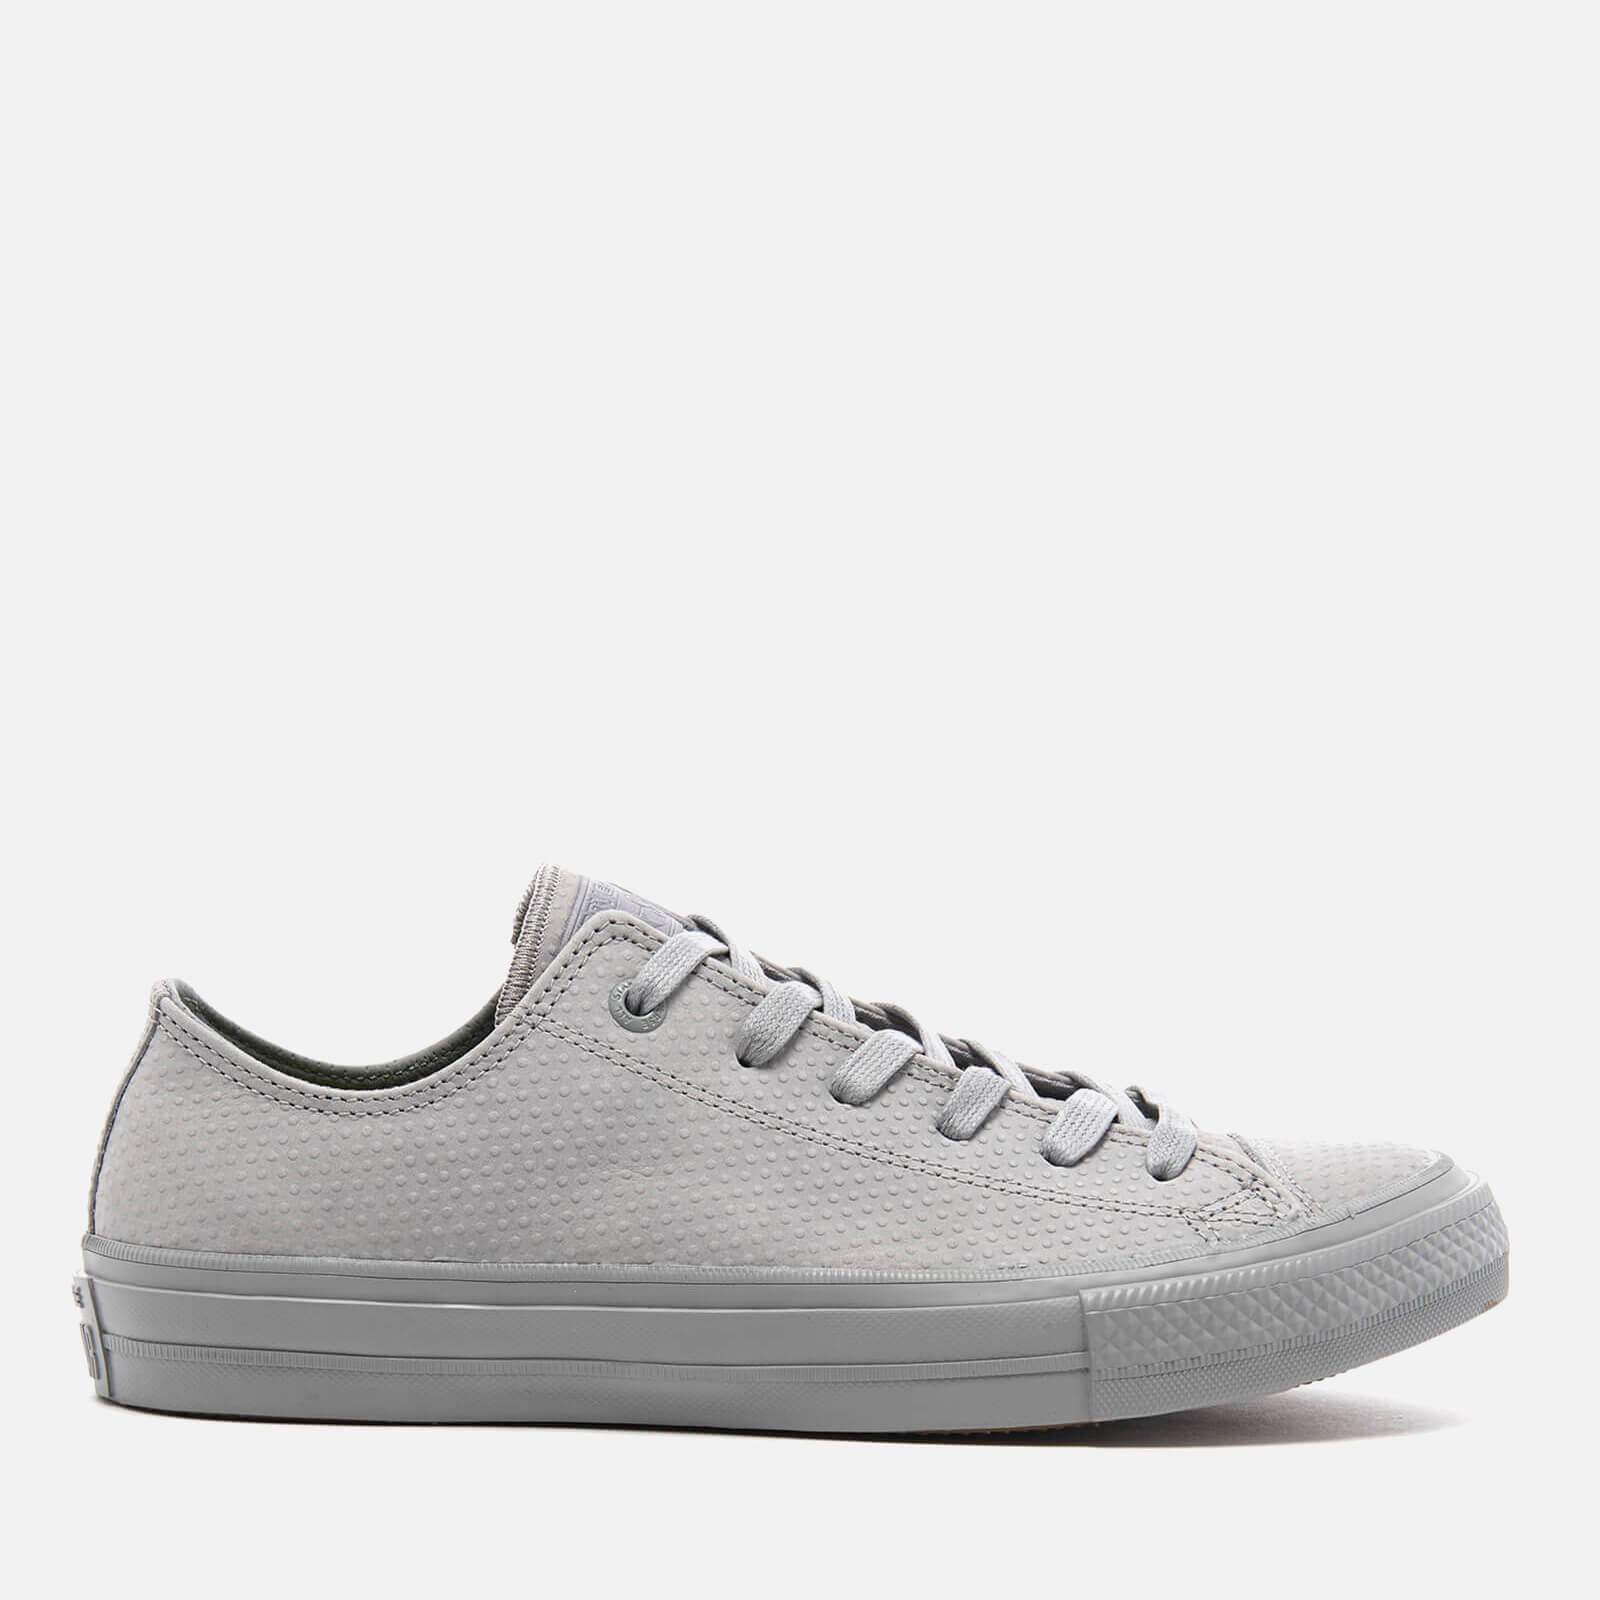 c99f29490ff2 Converse Men s Chuck Taylor All Star II Ox Trainers - Dolphin Gum ...